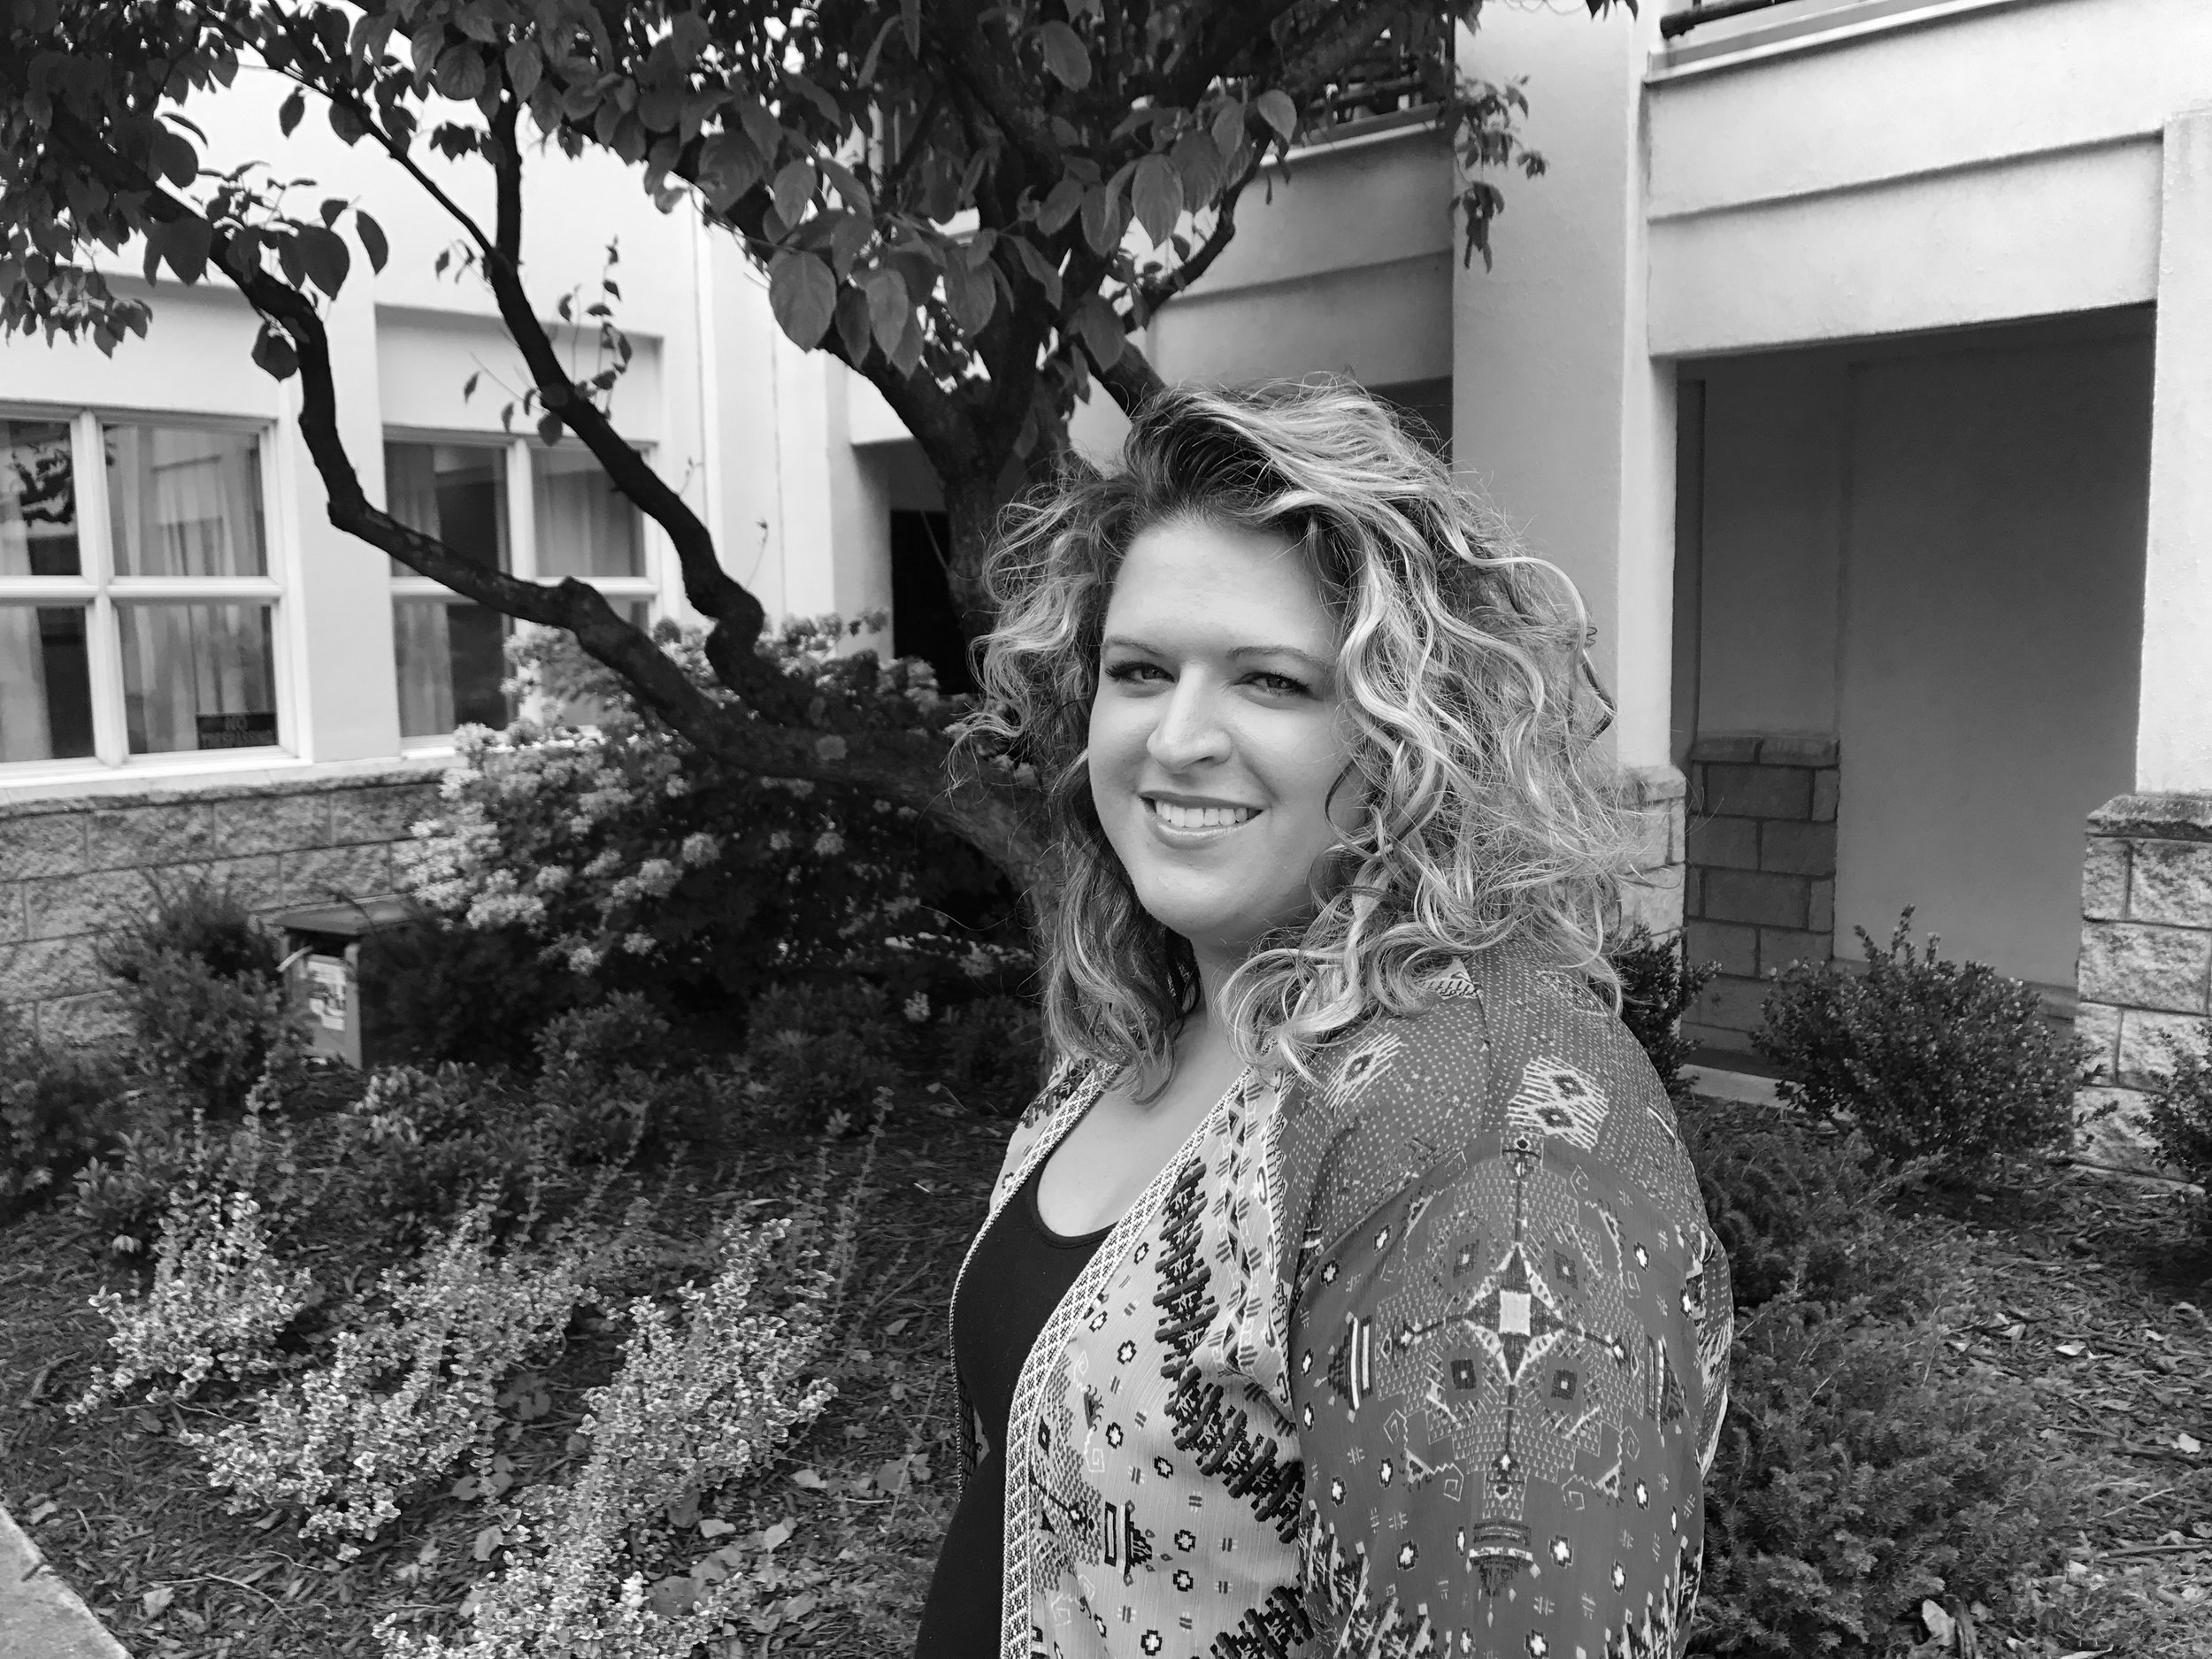 Christa graduated from Haywood Community College in 2007 with her degree in Cosmetology. She began her career at Mastercuts, where she became familiar with color lines like Redken and Matrix.In 2012, Christa came to work for Salon Dragonfly. Since joining Dragonfly she has gained even more knowledge by being trained with another color line, Aveda, as well as their product line. She has since then gained knowledge by working with DevaCurl, and with our two newest color and product lines; Davines and Moroccanoil.Aside from having years of experience with cut and color, Christa is also experienced in formal hair styling and makeup application. She is trained in applying Jane Iredale makeup, and does makeup application from formal to everyday looks. Over all, Christa is well experienced in every area of the business and loves creating trendy styles for every individual that is in her chair. -